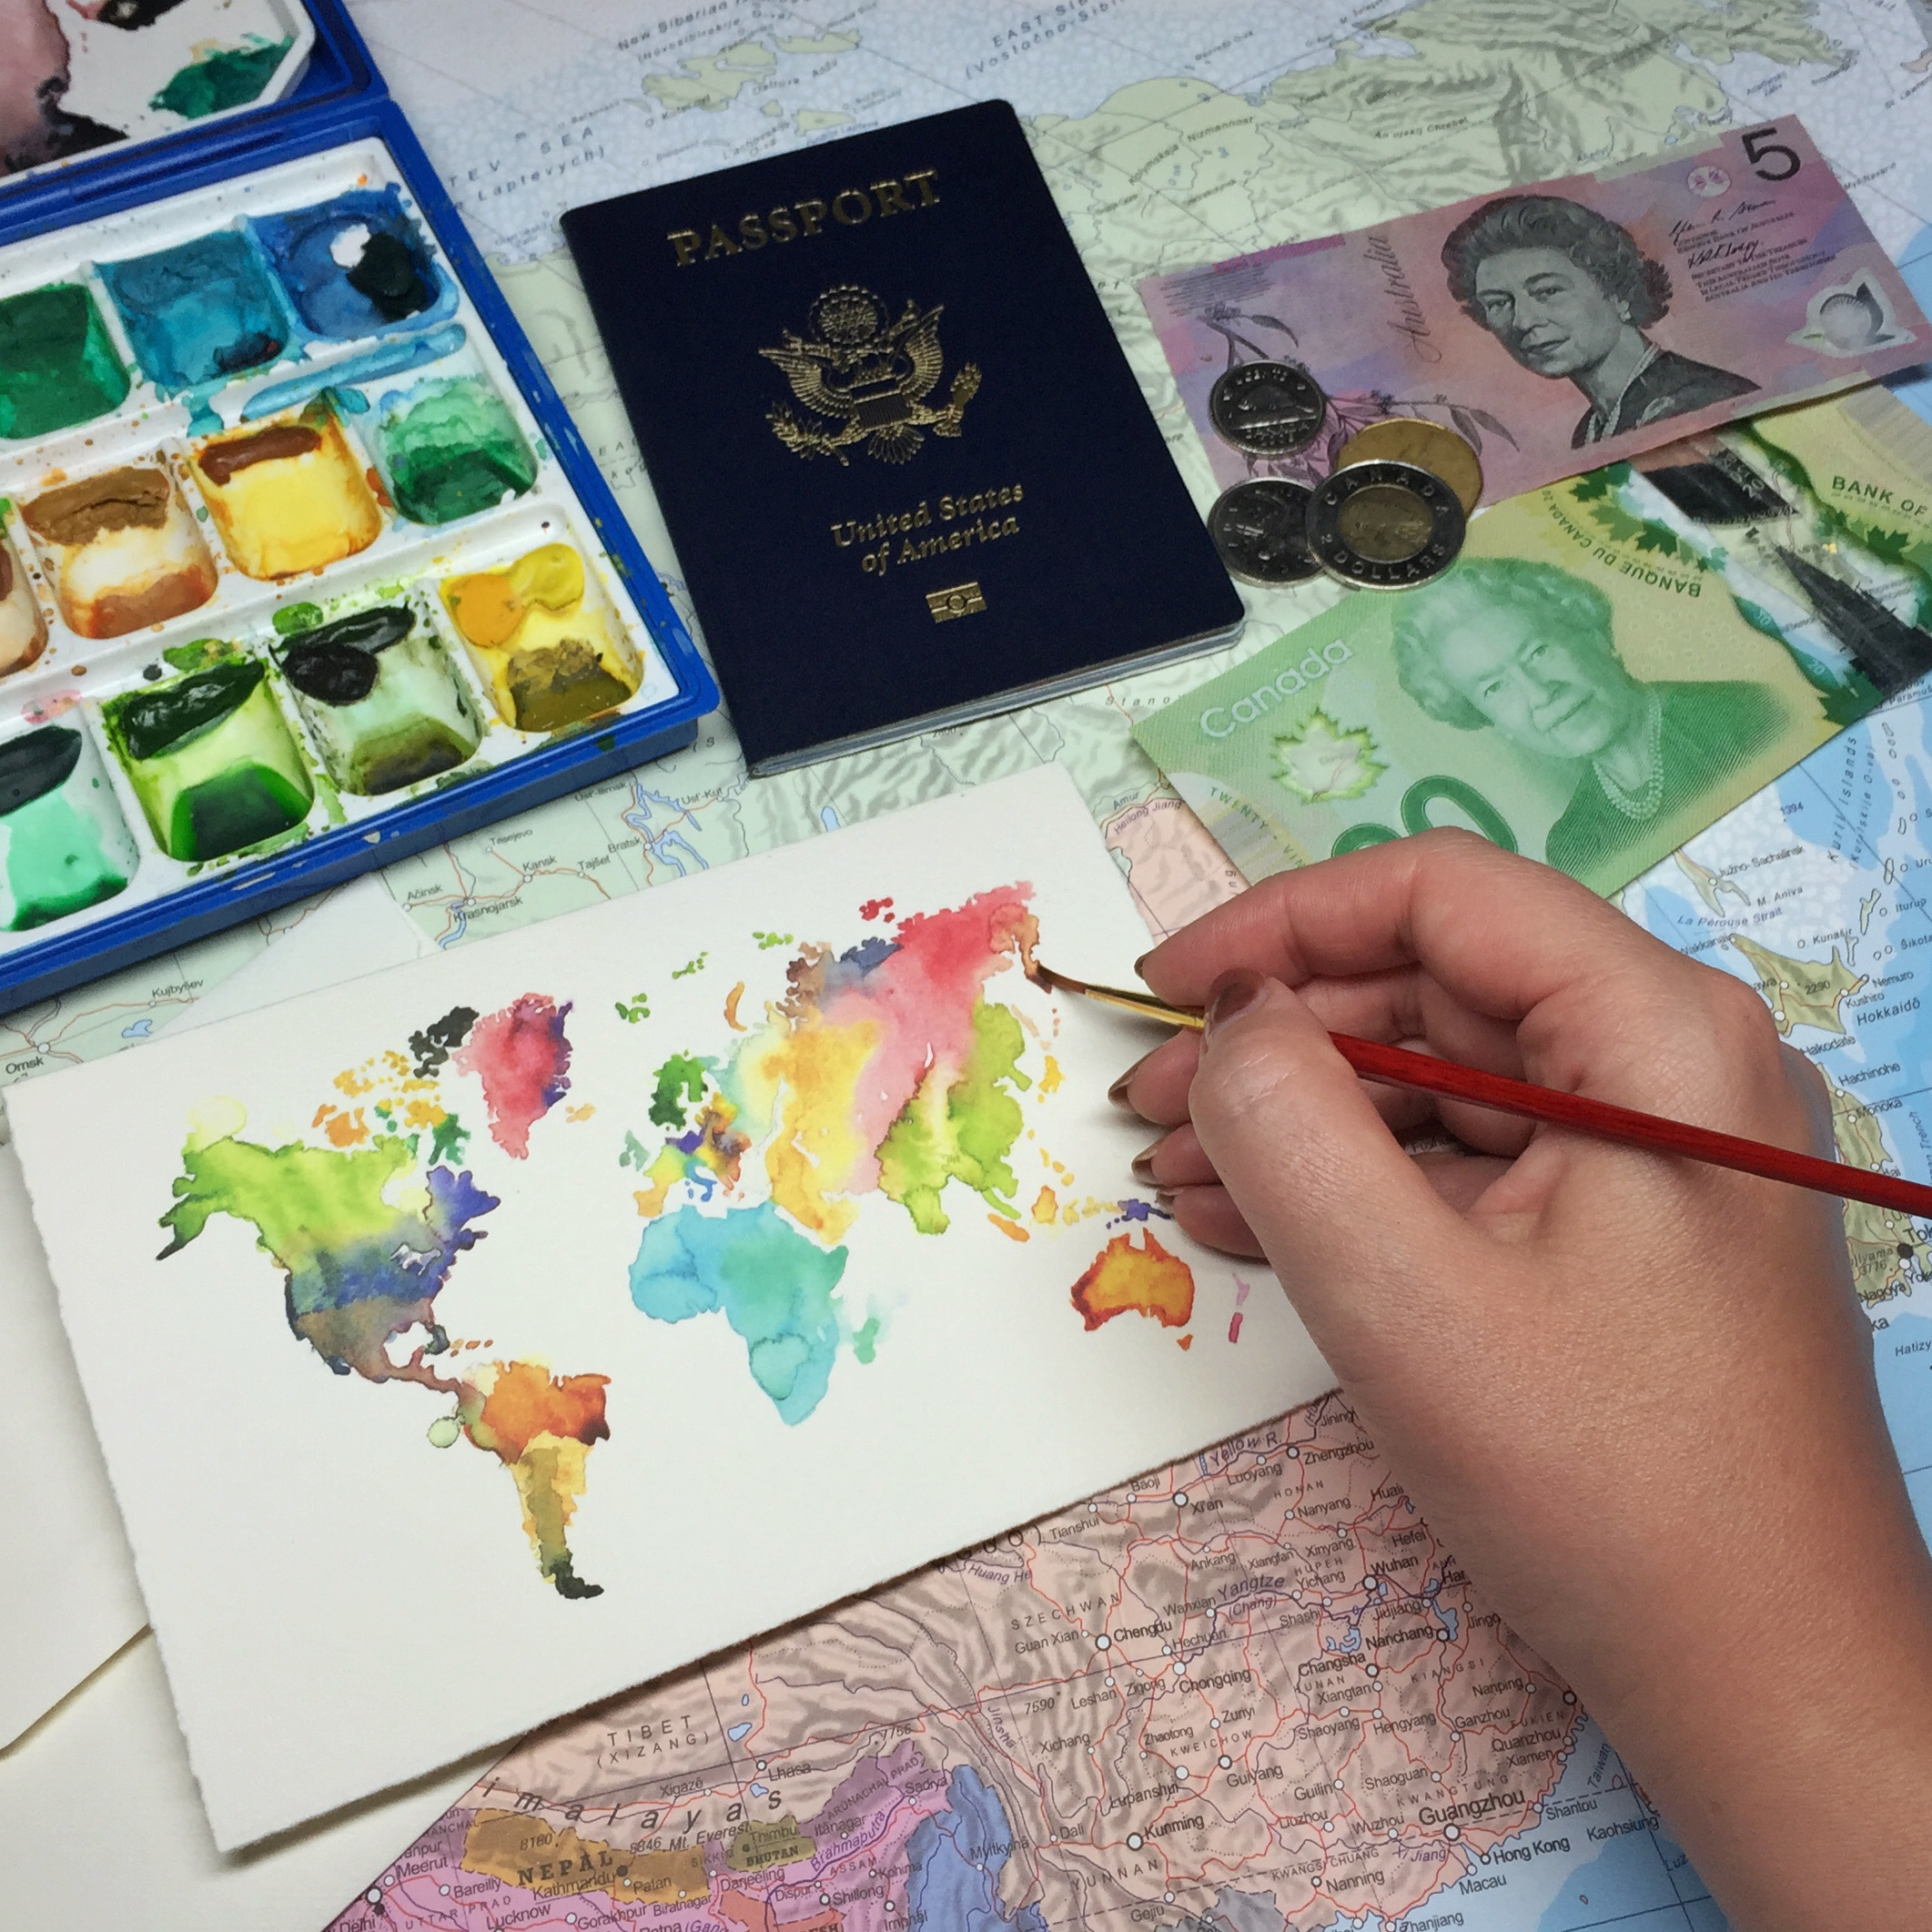 Watercolor Map Illustration by Jessica Mack of BrownPaperBunny